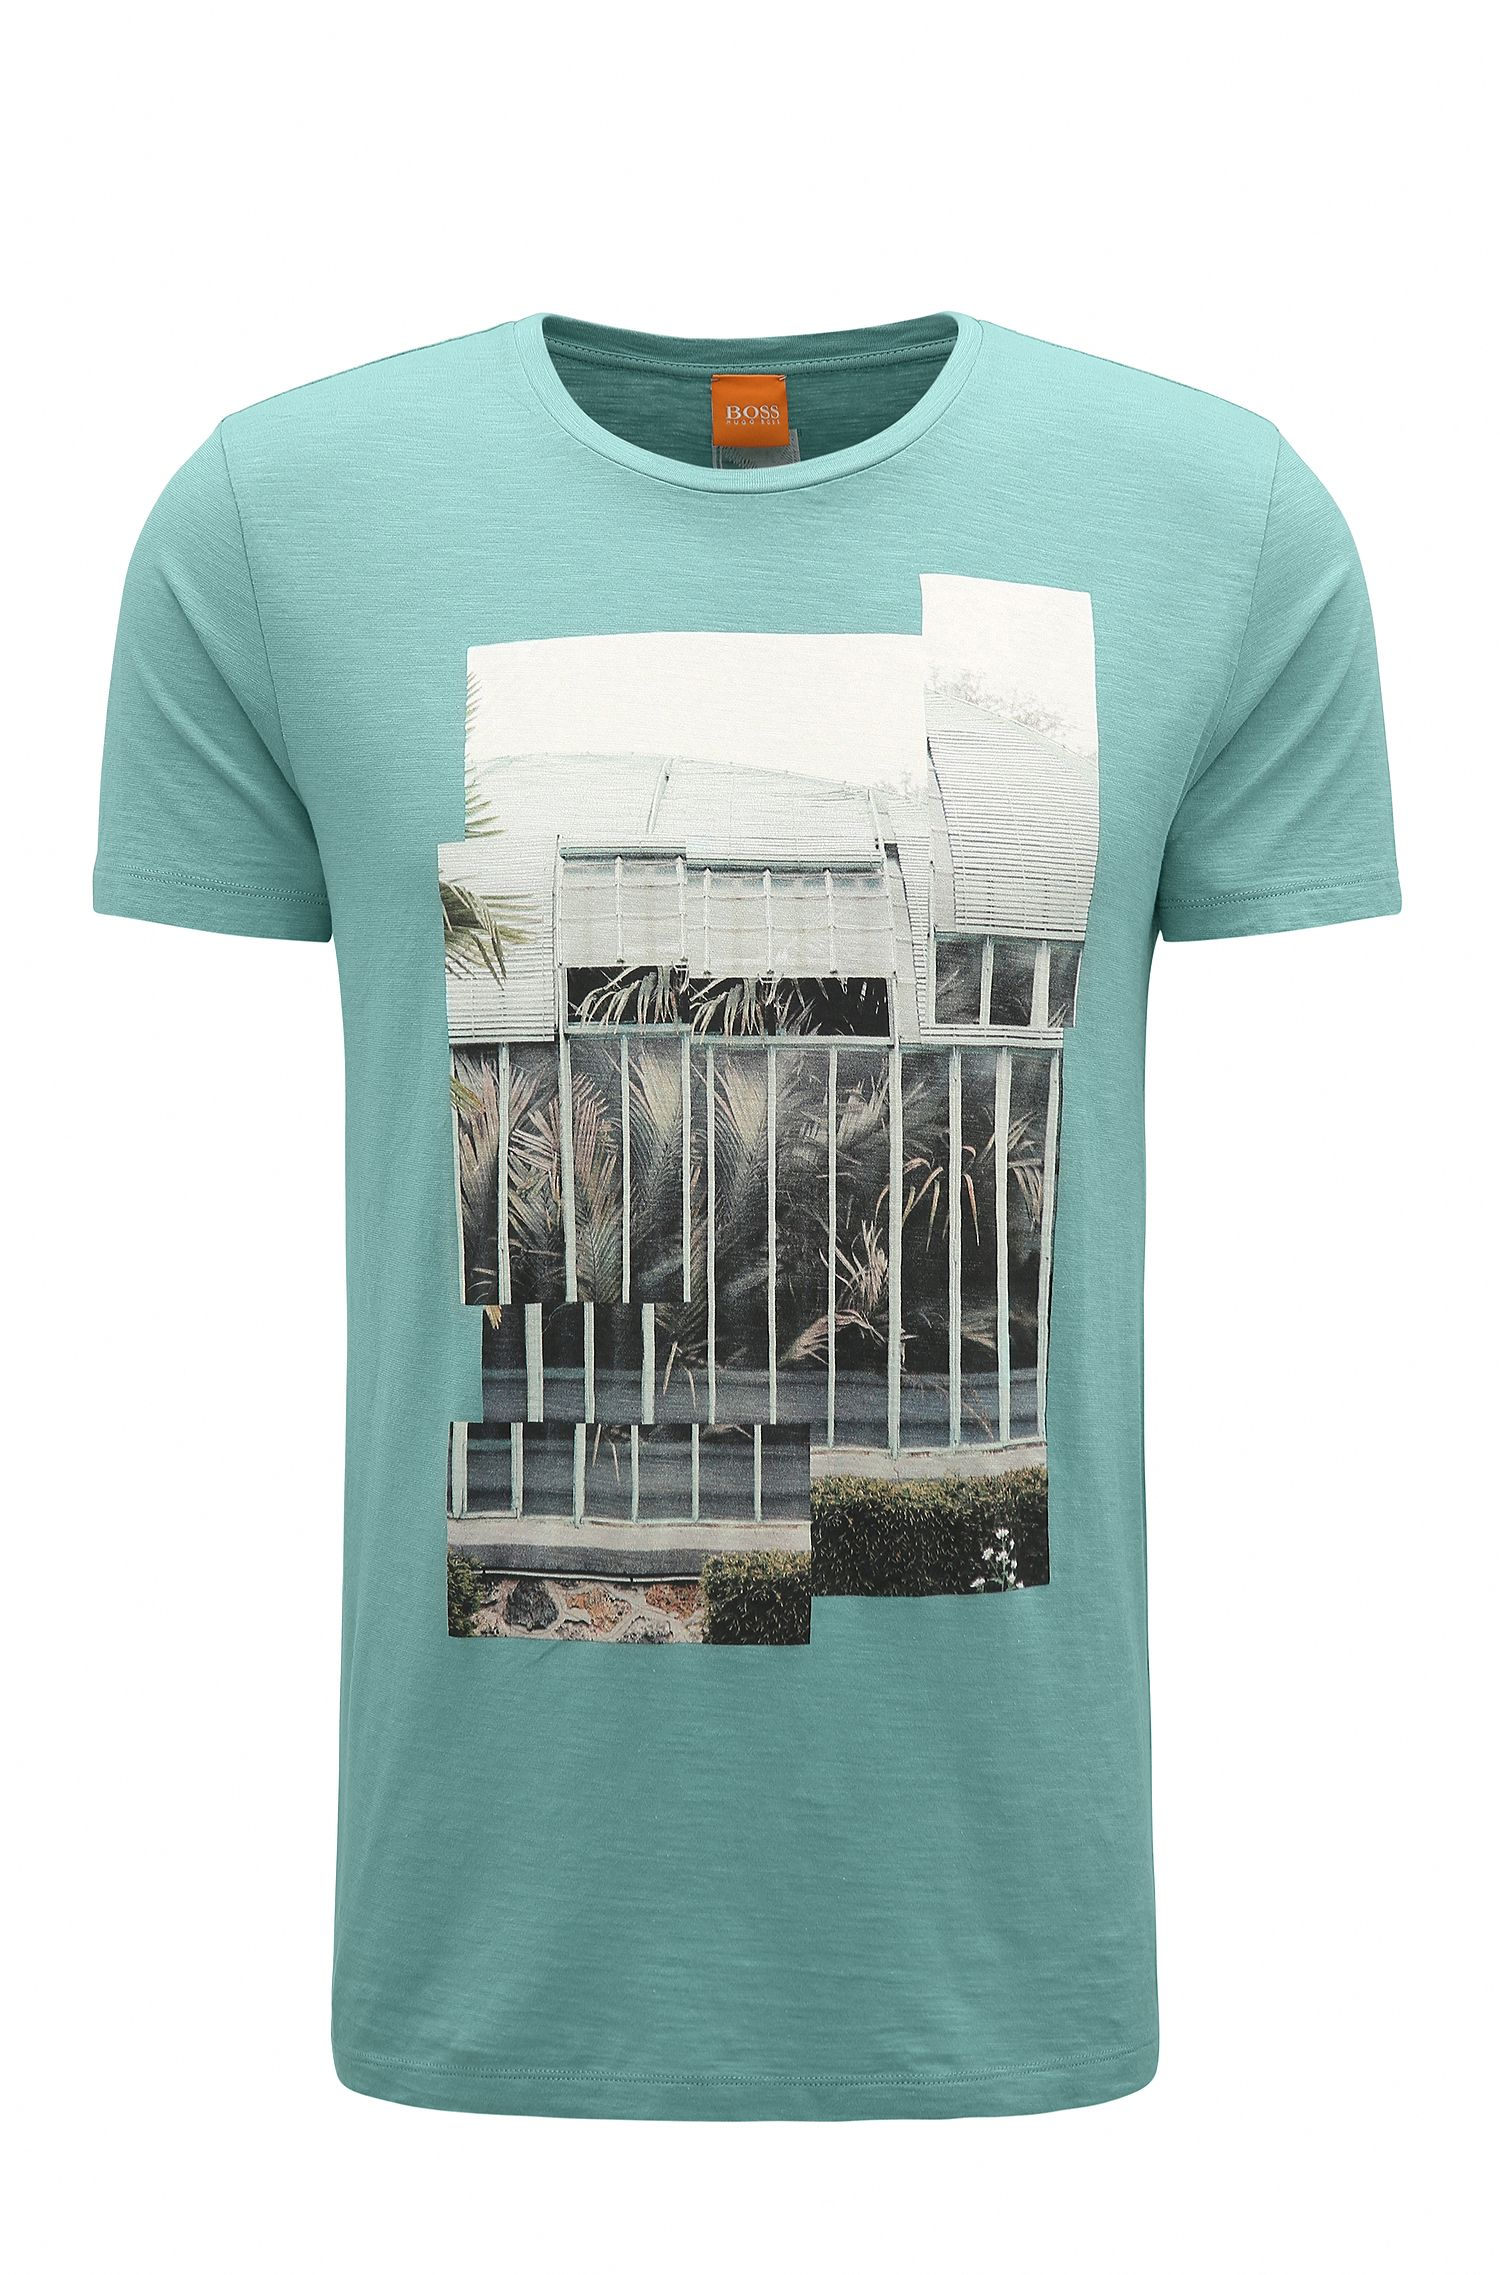 T-shirt regular fit in cotone con stampa digitale